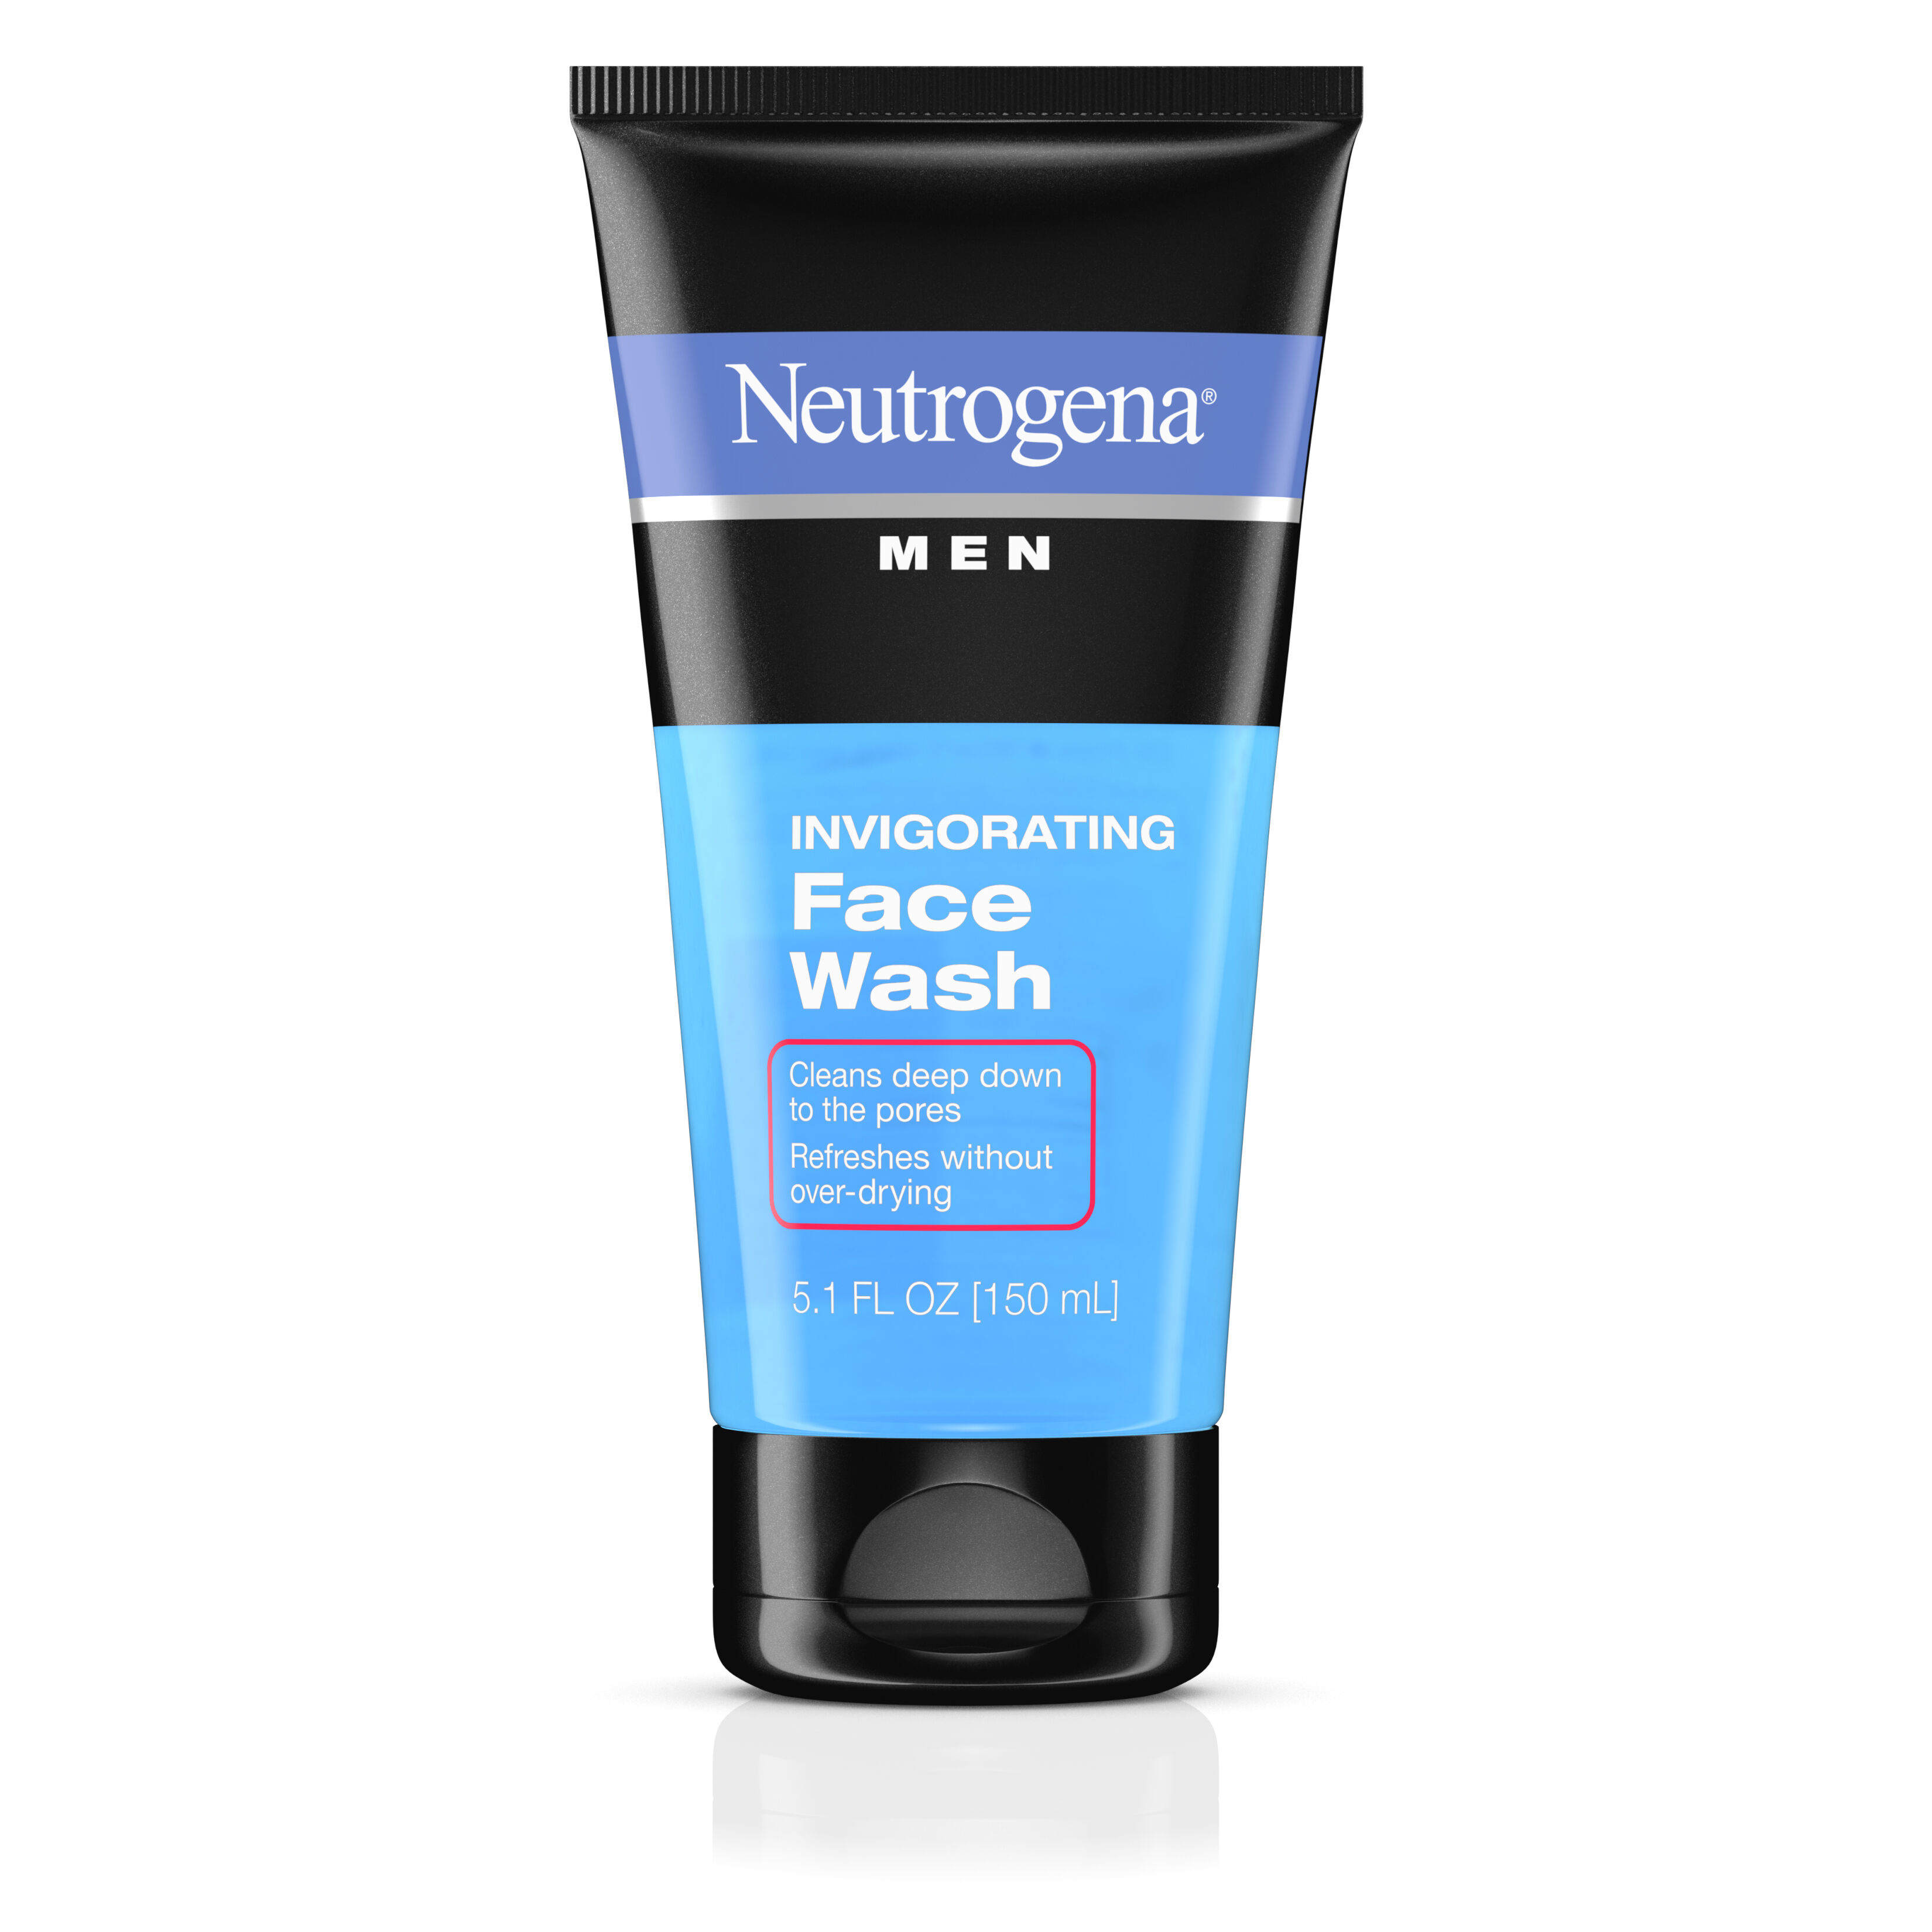 Neutrogena Men Invigorating Face Wash 5.1 fl oz(pack of 12) Reviva Glycolic Acid Oily Skin Daytime Light Face Cream Moisturizer - 1.5 Oz, 6 Pack